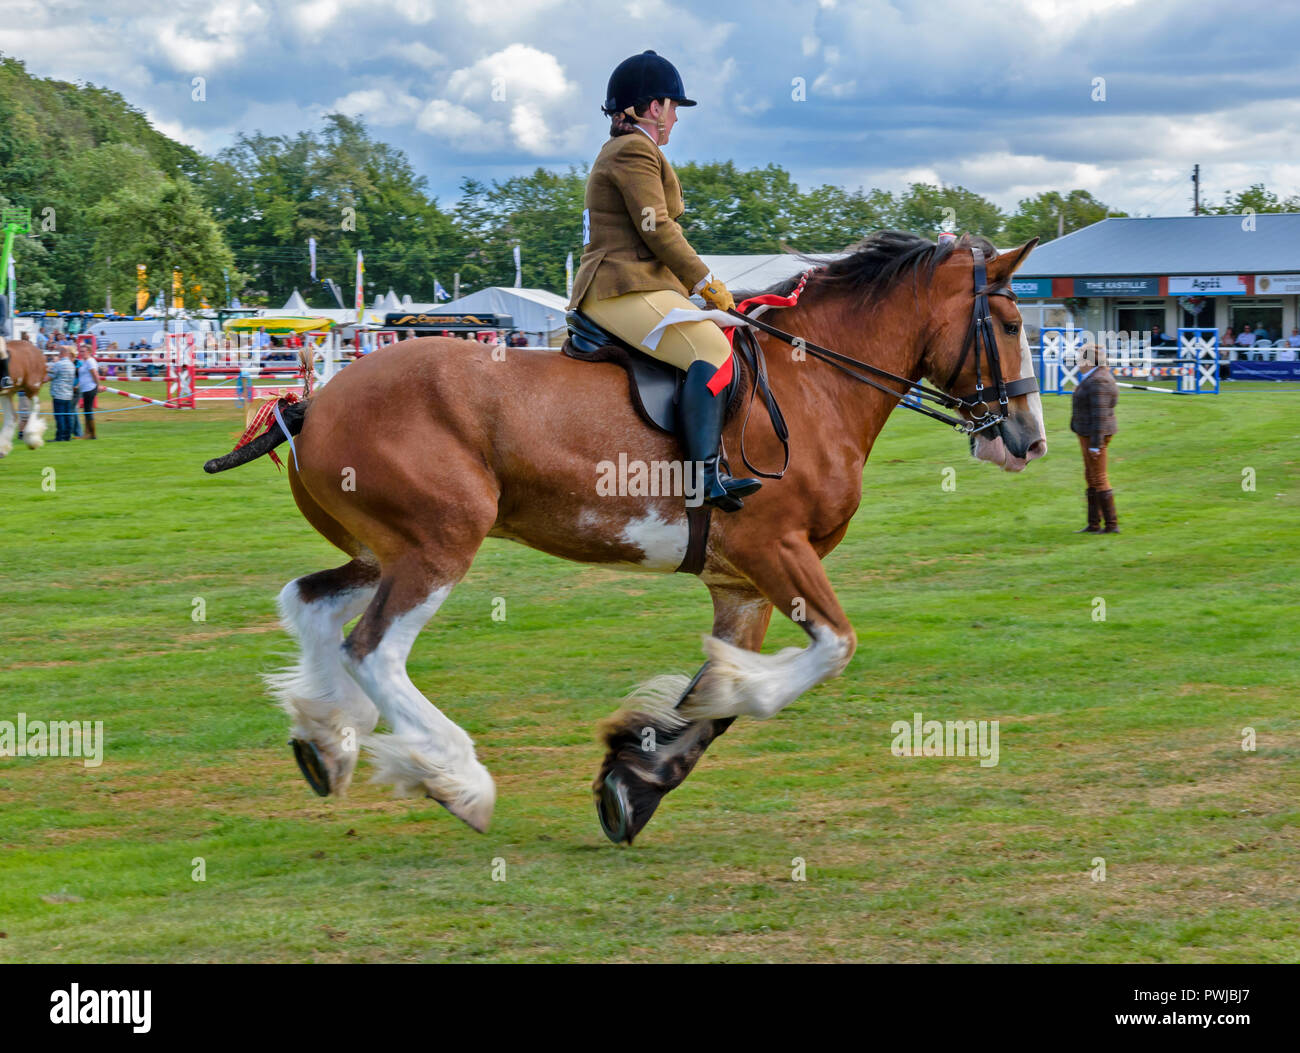 Clydesdale Horse Gallop High Resolution Stock Photography And Images Alamy